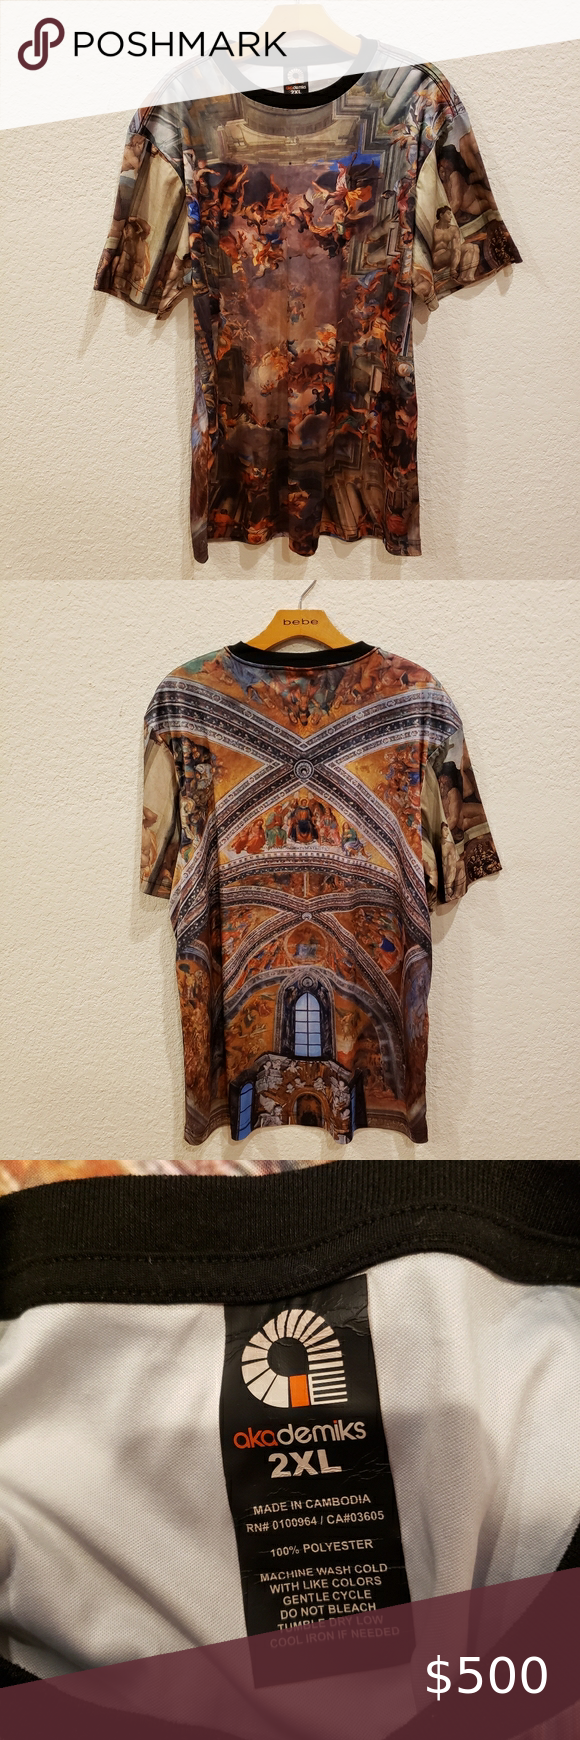 AKADEMIKS Sistine Chapel Short Sleeve T-Shirt 2XL Sistine Chapel Michelangelo Print Tee  RARE!! No longer in production. Novelty 100% polyester Short Sleeves Machine wash Men's top  size 2XL condition: excellent/pre-owned color: grey | black | brown   designer: akademiks  smoke-free home @wickedrosevtg  [F1]  Jersey Shore keto guido bad ass pimpin' pimp & hoe naked peeps Akademiks Shirts Tees - Short Sleeve